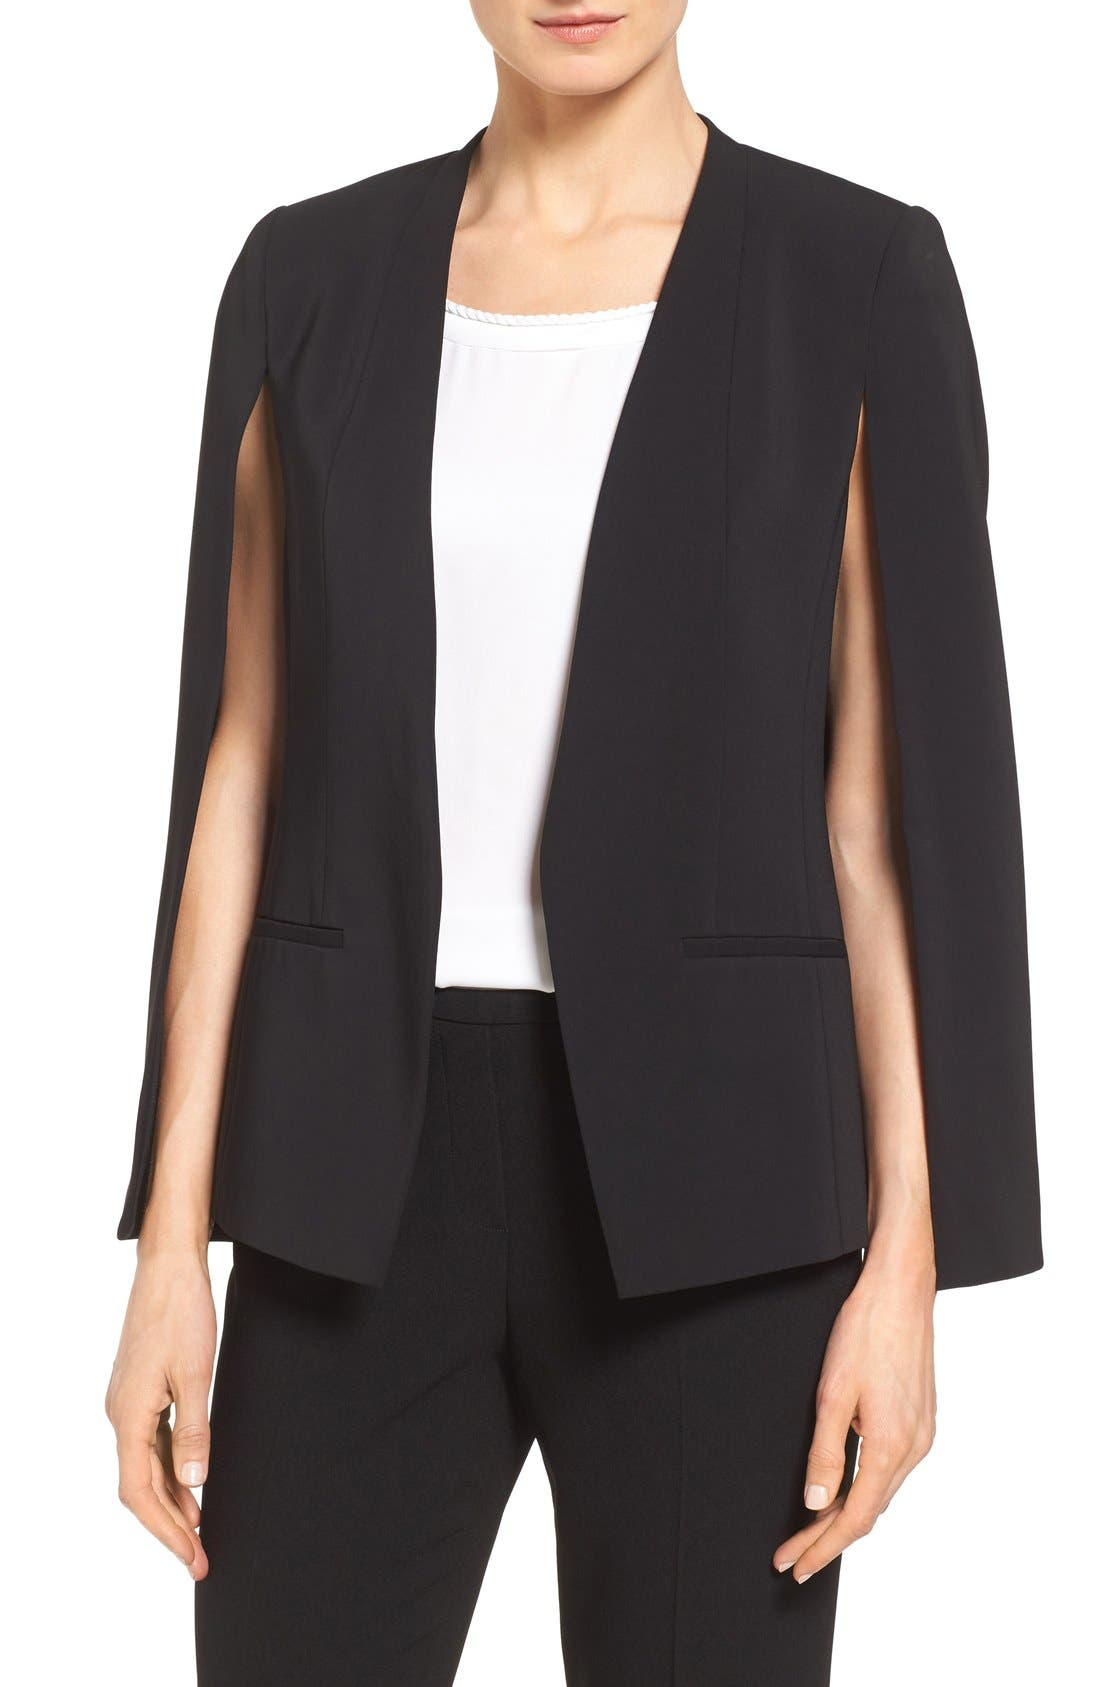 Main Image - Kobi Halperin 'Perri' Open Front Blazer with Cape Sleeves